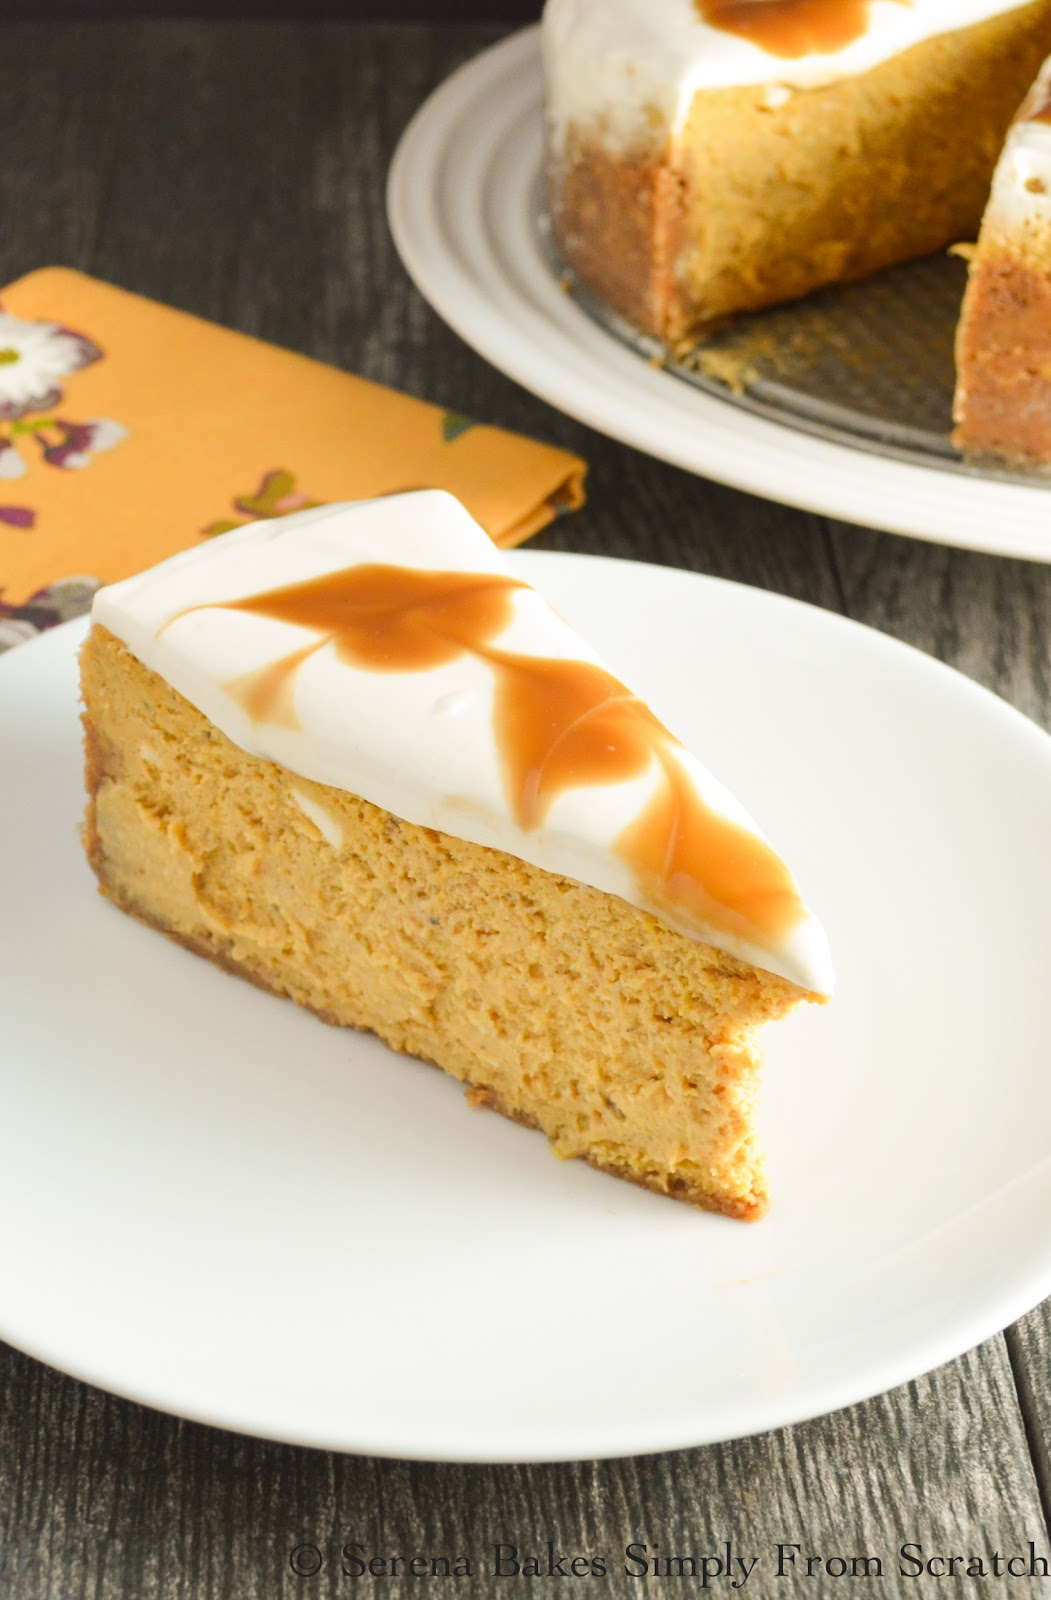 Pumpkin Cheesecake With Butterscotch Swirl is an elegant dessert perfect for Thanksgiving or Christmas. www.serenabakessimplyfromscratch.com